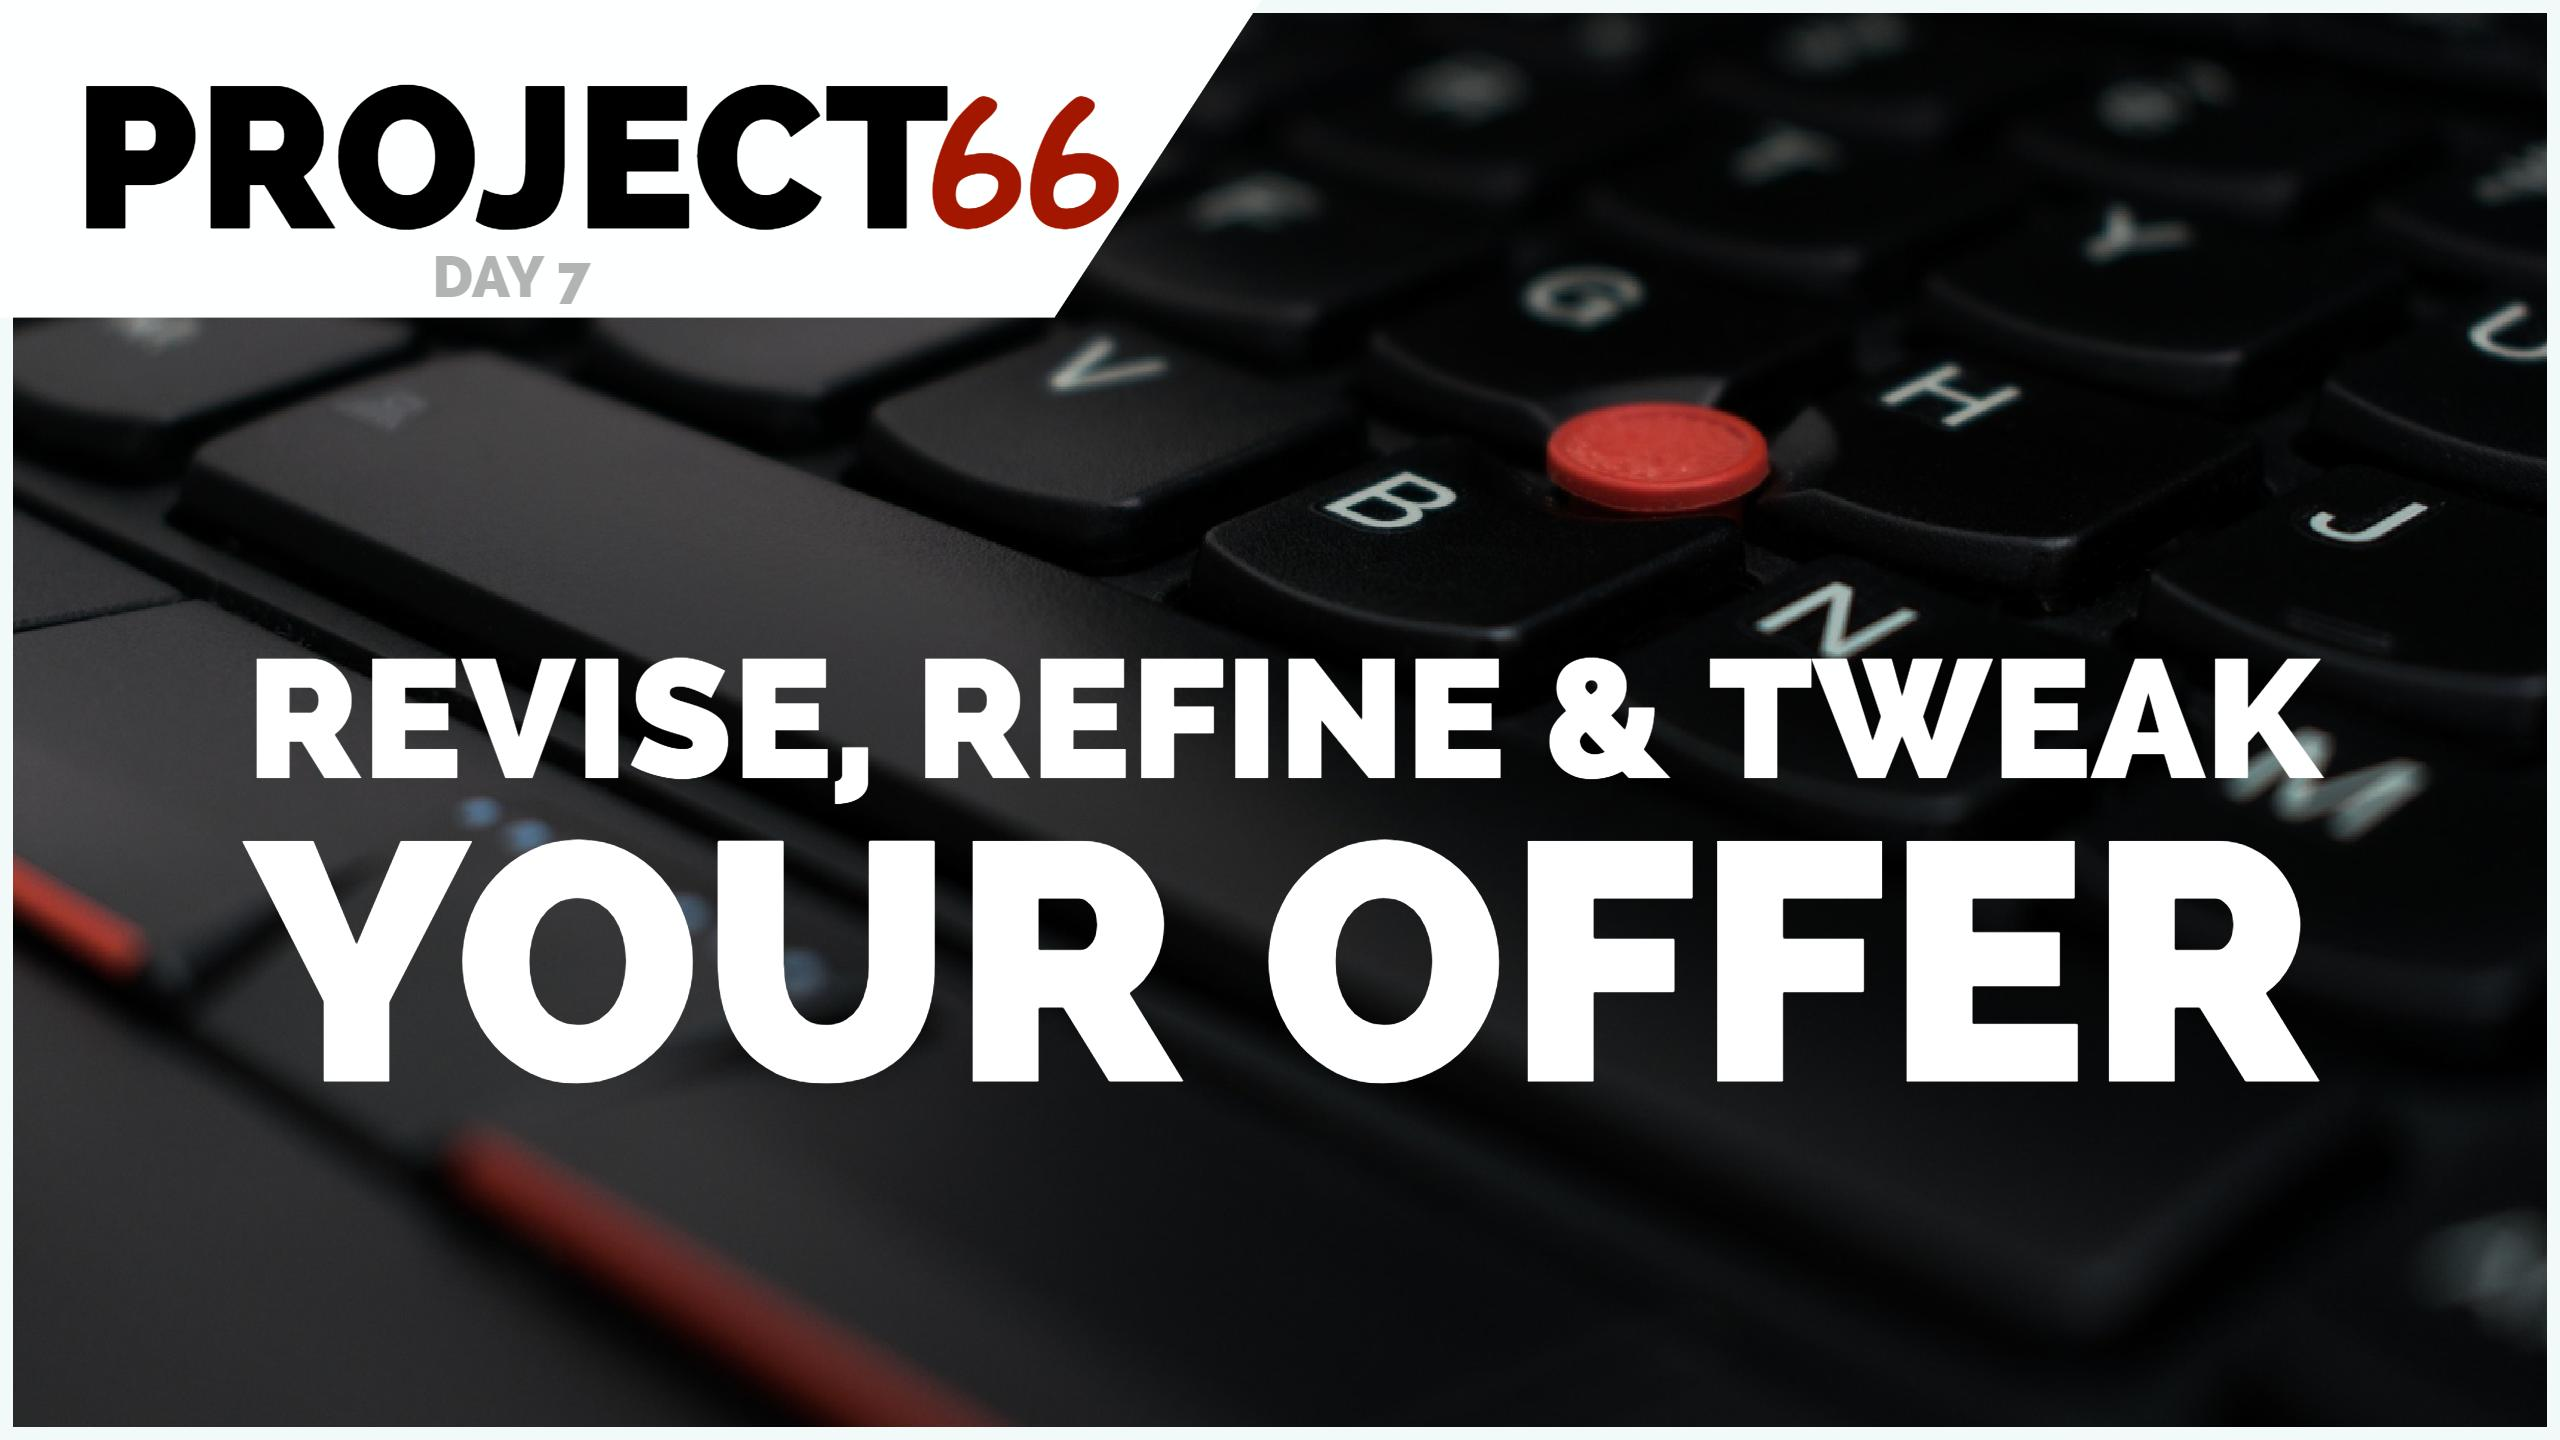 Project66 – Day 7 – Revise, Refine & Tweak Your Offer